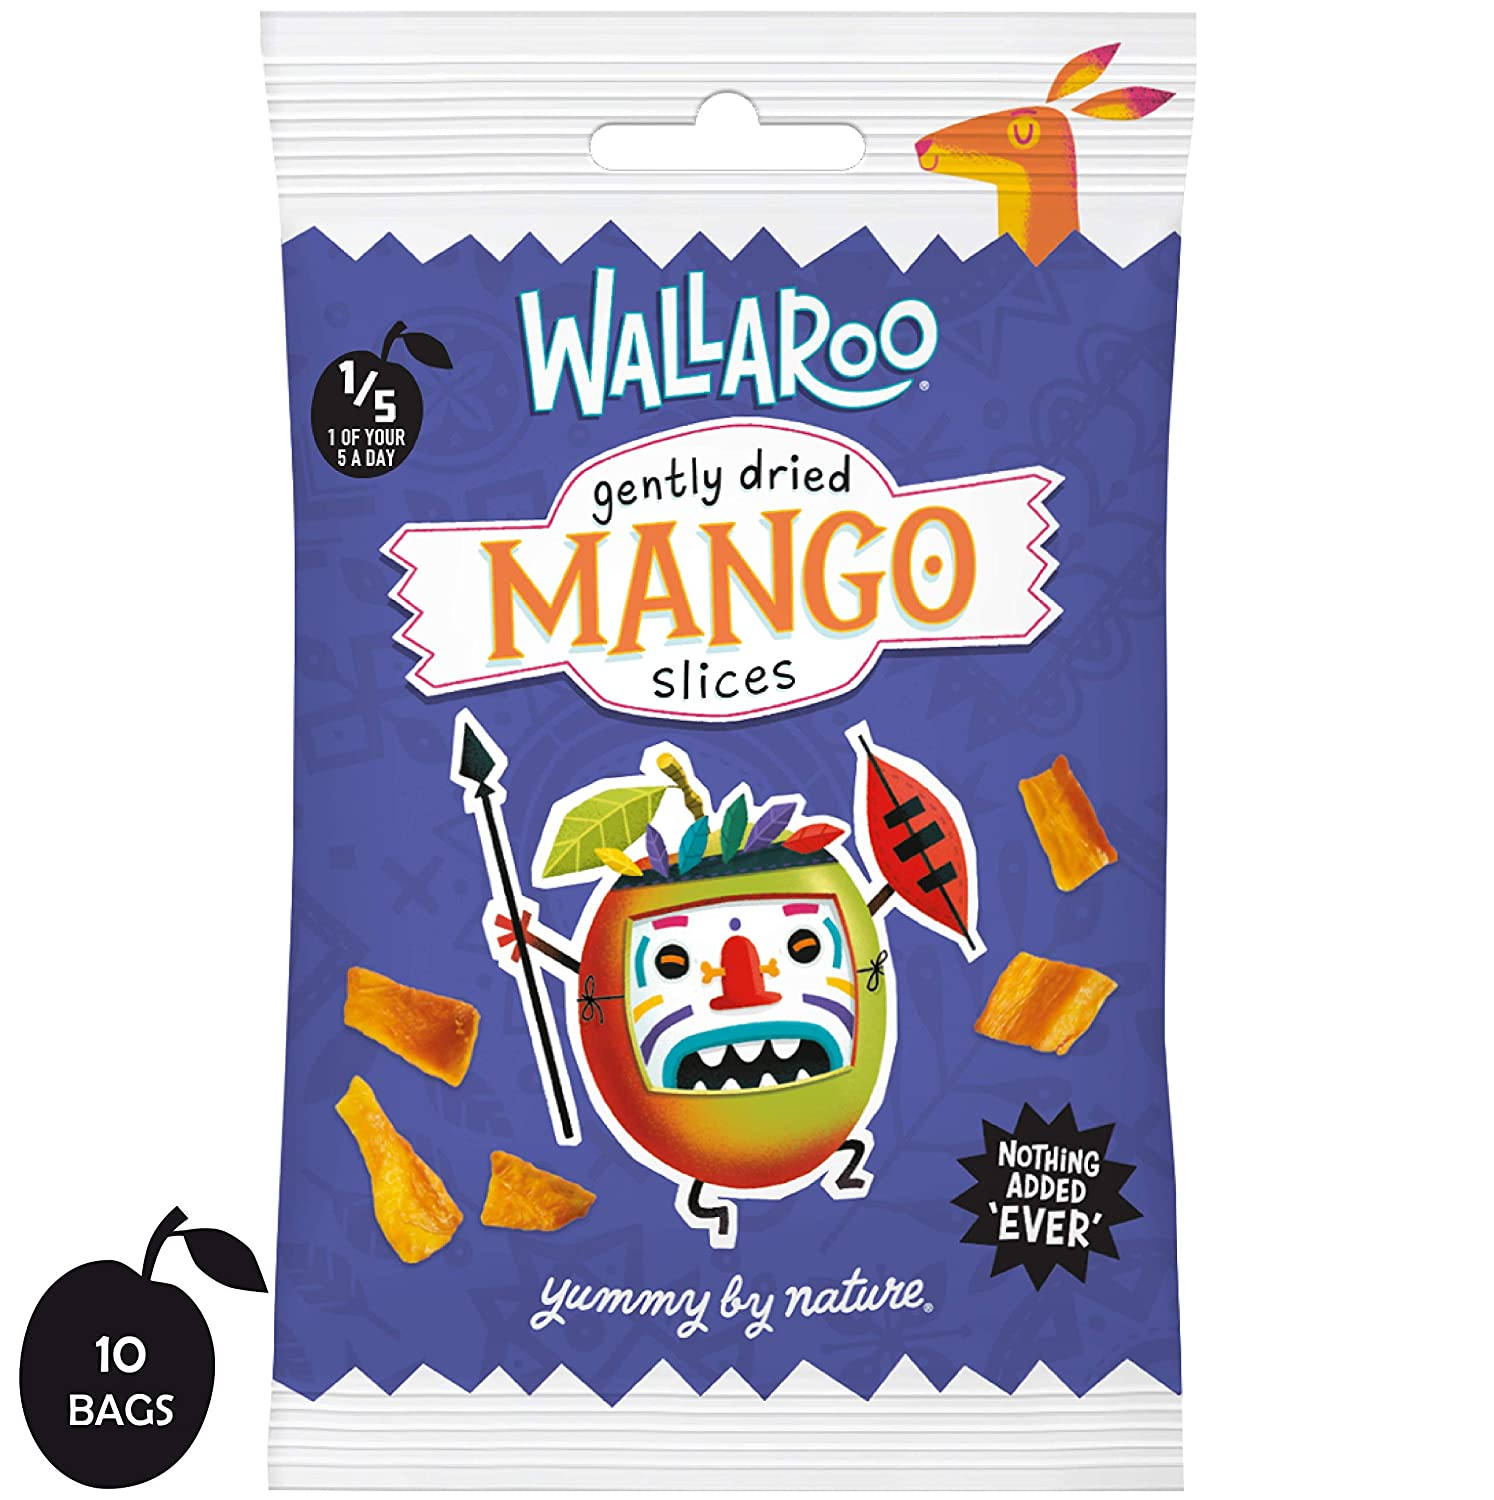 Wallaroo Gently Dried Mango Slices, 100% Mango Fruit Snack, No Sugar or Preservatives, Home Compostable Portion Sized Packs, Box of 10 x 30g Wallaroo Foods Ltd UKMNGBX300